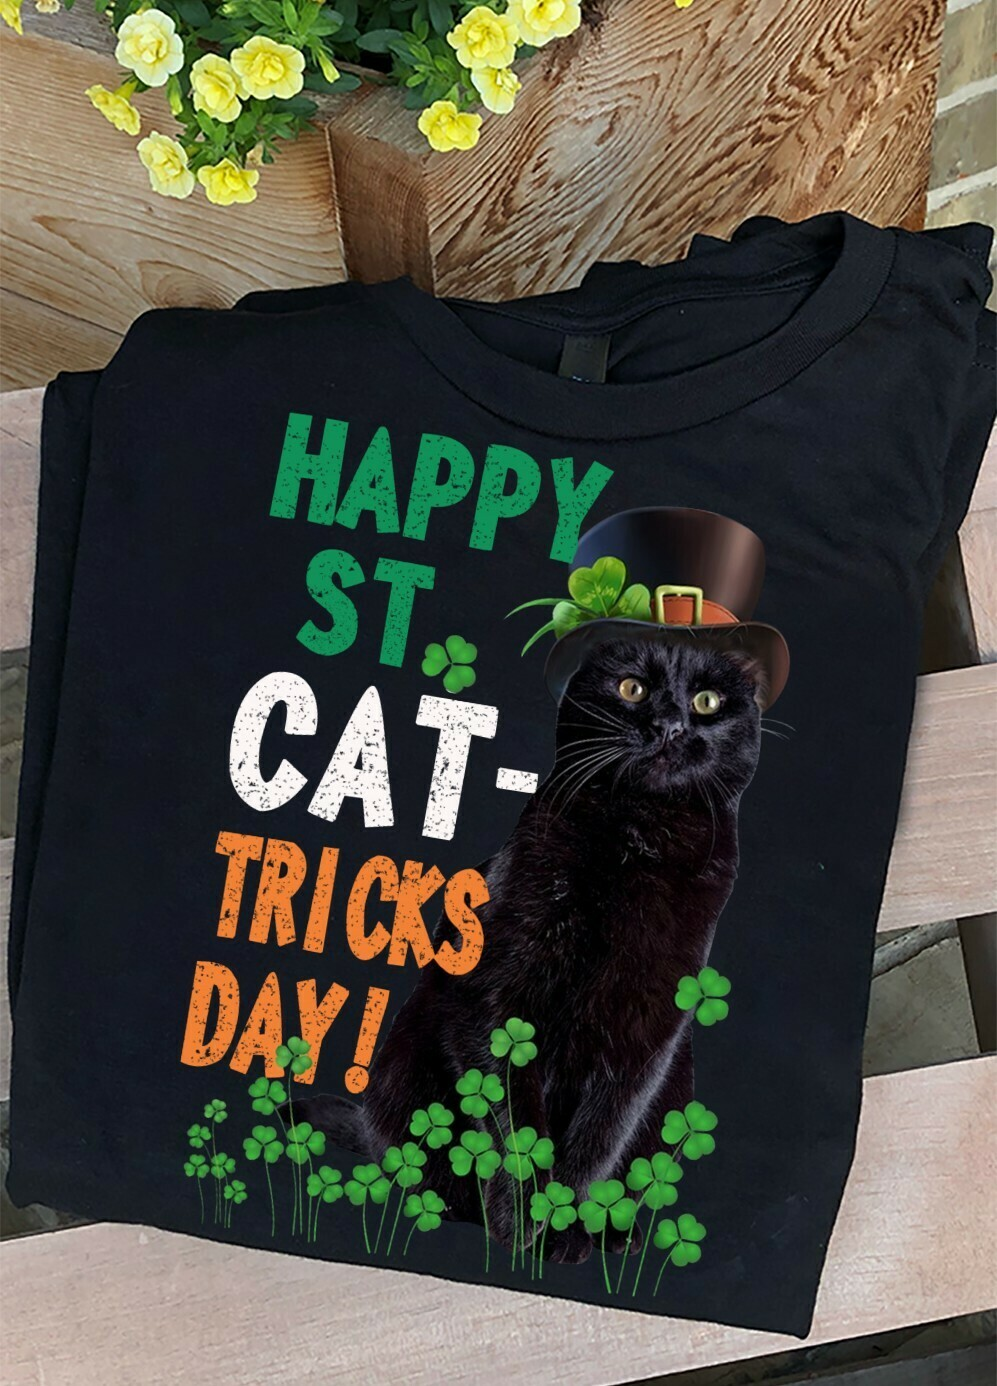 Happy St. Catricks Day,My Cat Is My Lucky Charm Happy Patrick's Day,Cats Caticorn Leprechaun Funny St Paddy's Day  T-Shirt Hoodie Sweatshirt Sweater Tee Kids Youth Gifts Jolly Family Gifts